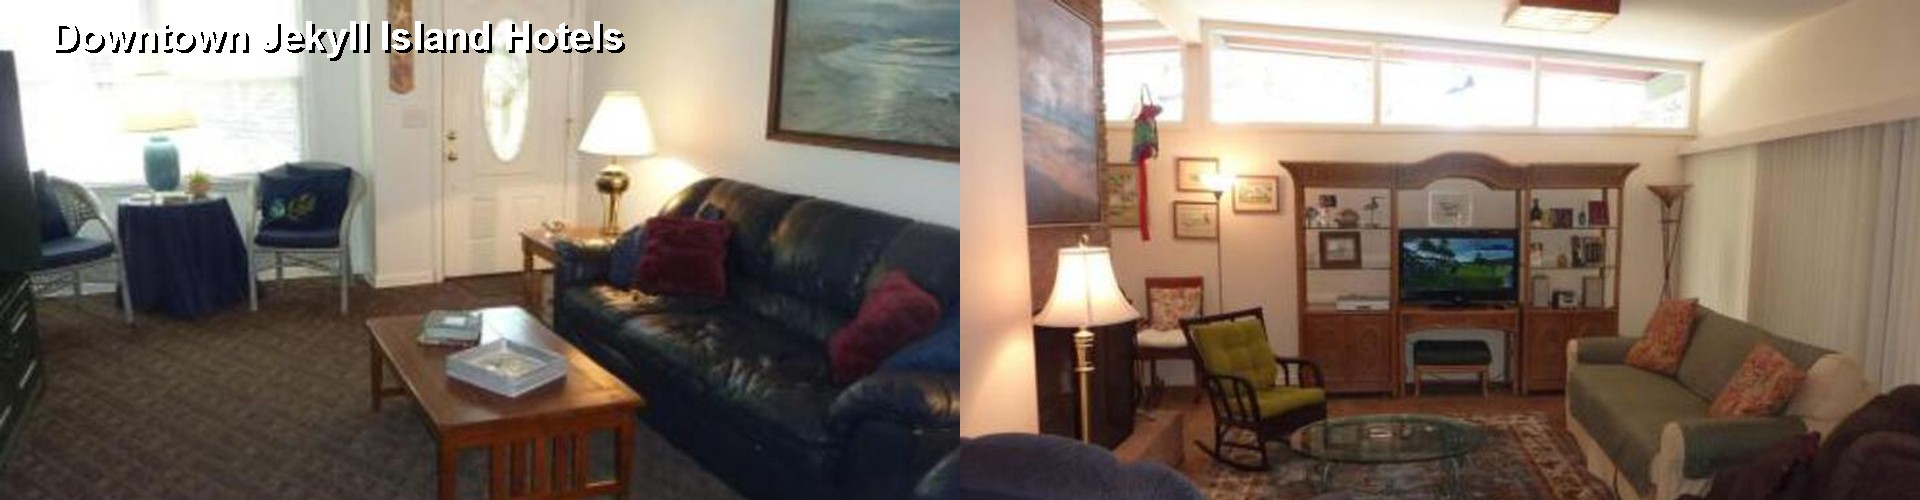 5 Best Hotels near Downtown Jekyll Island